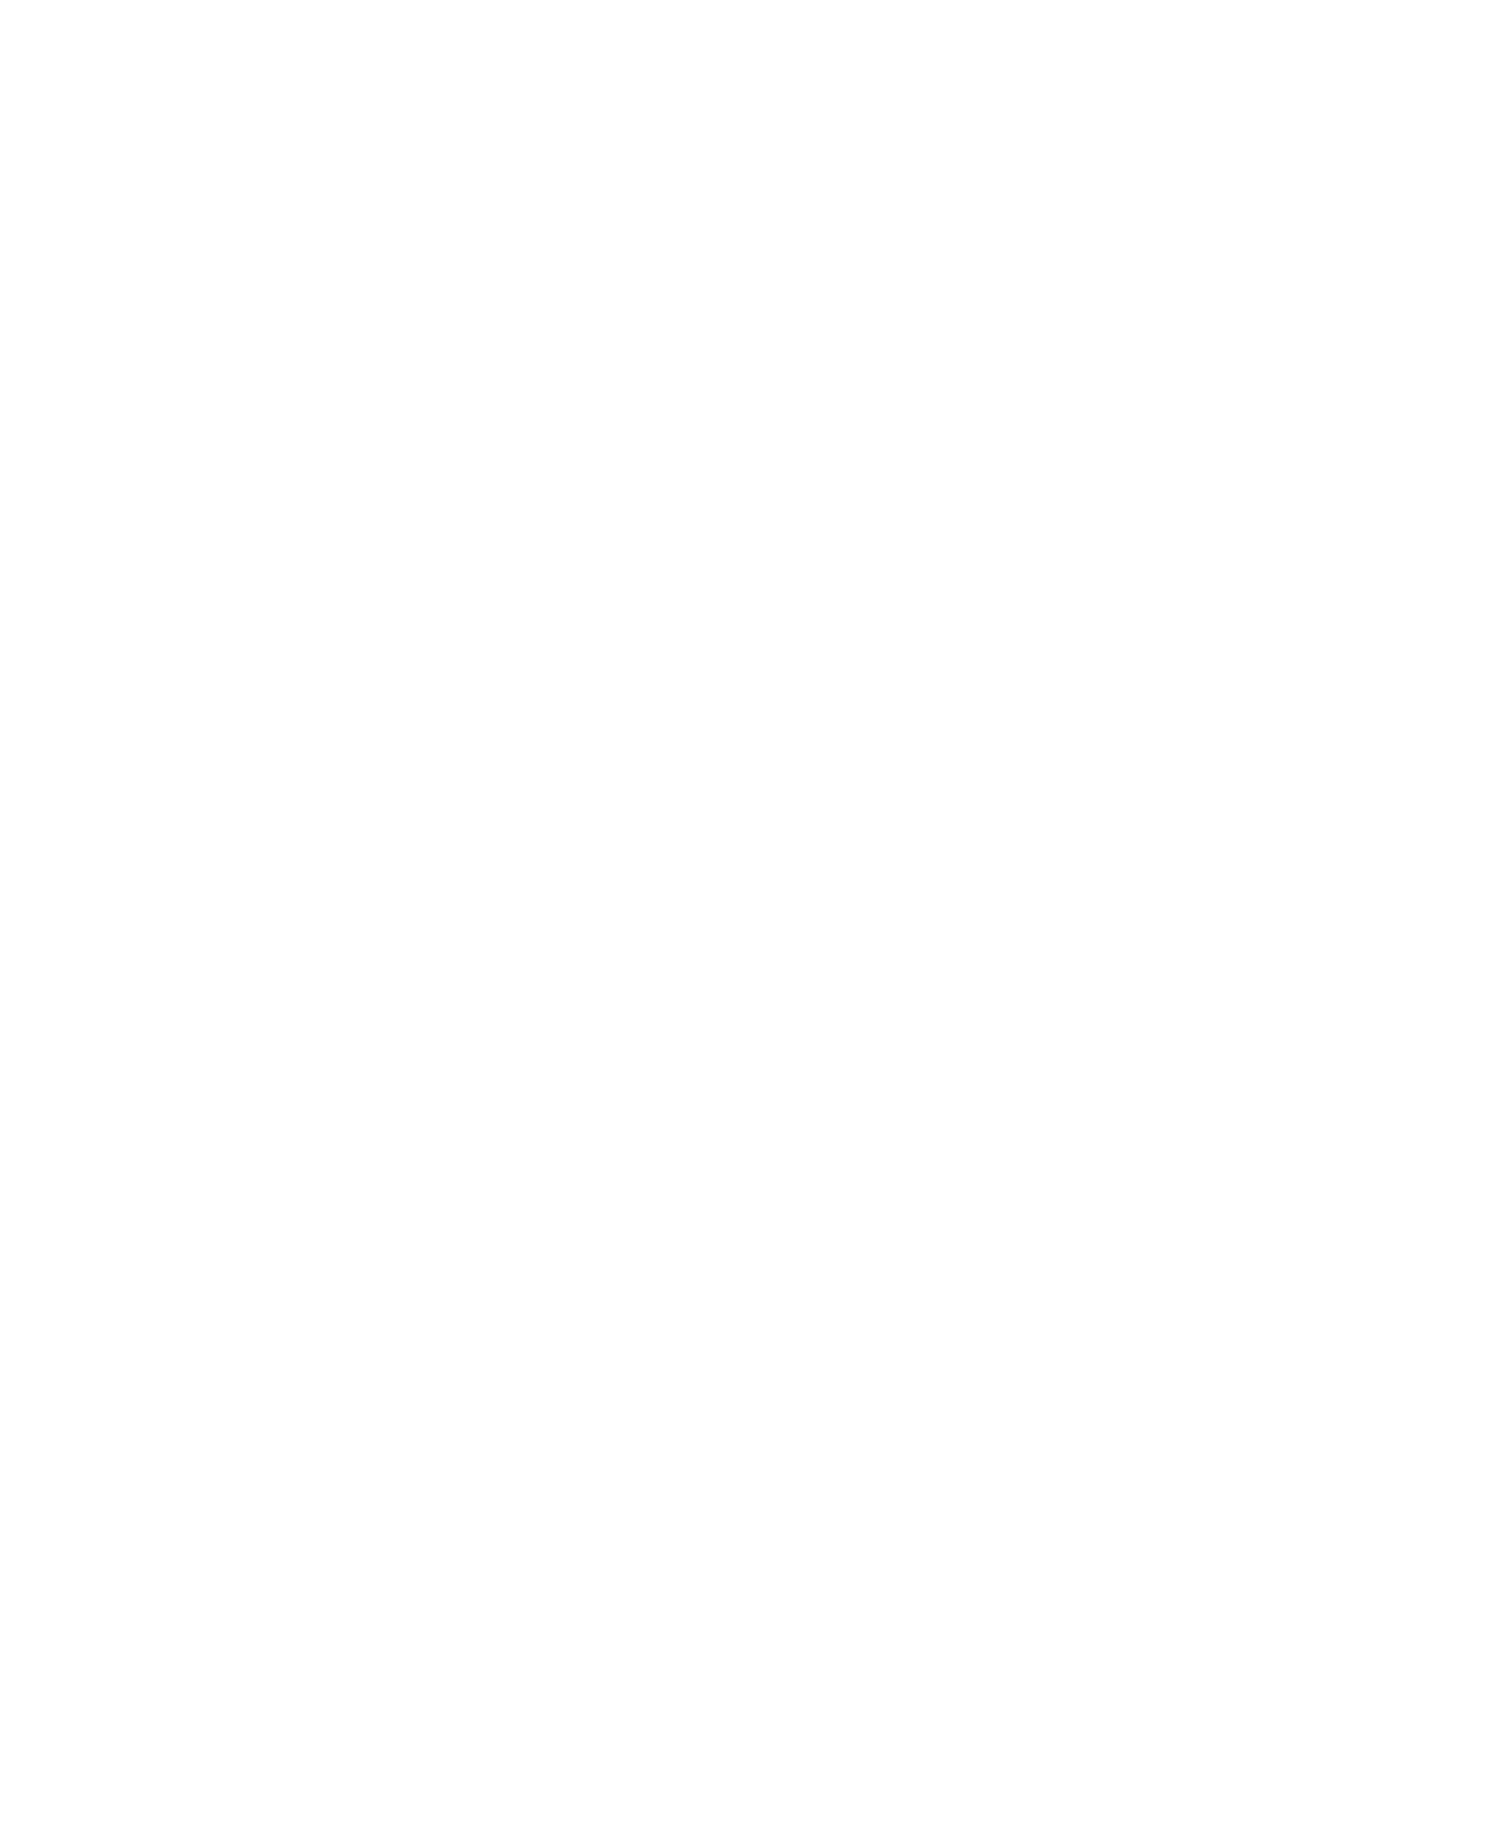 Vyce Workshop